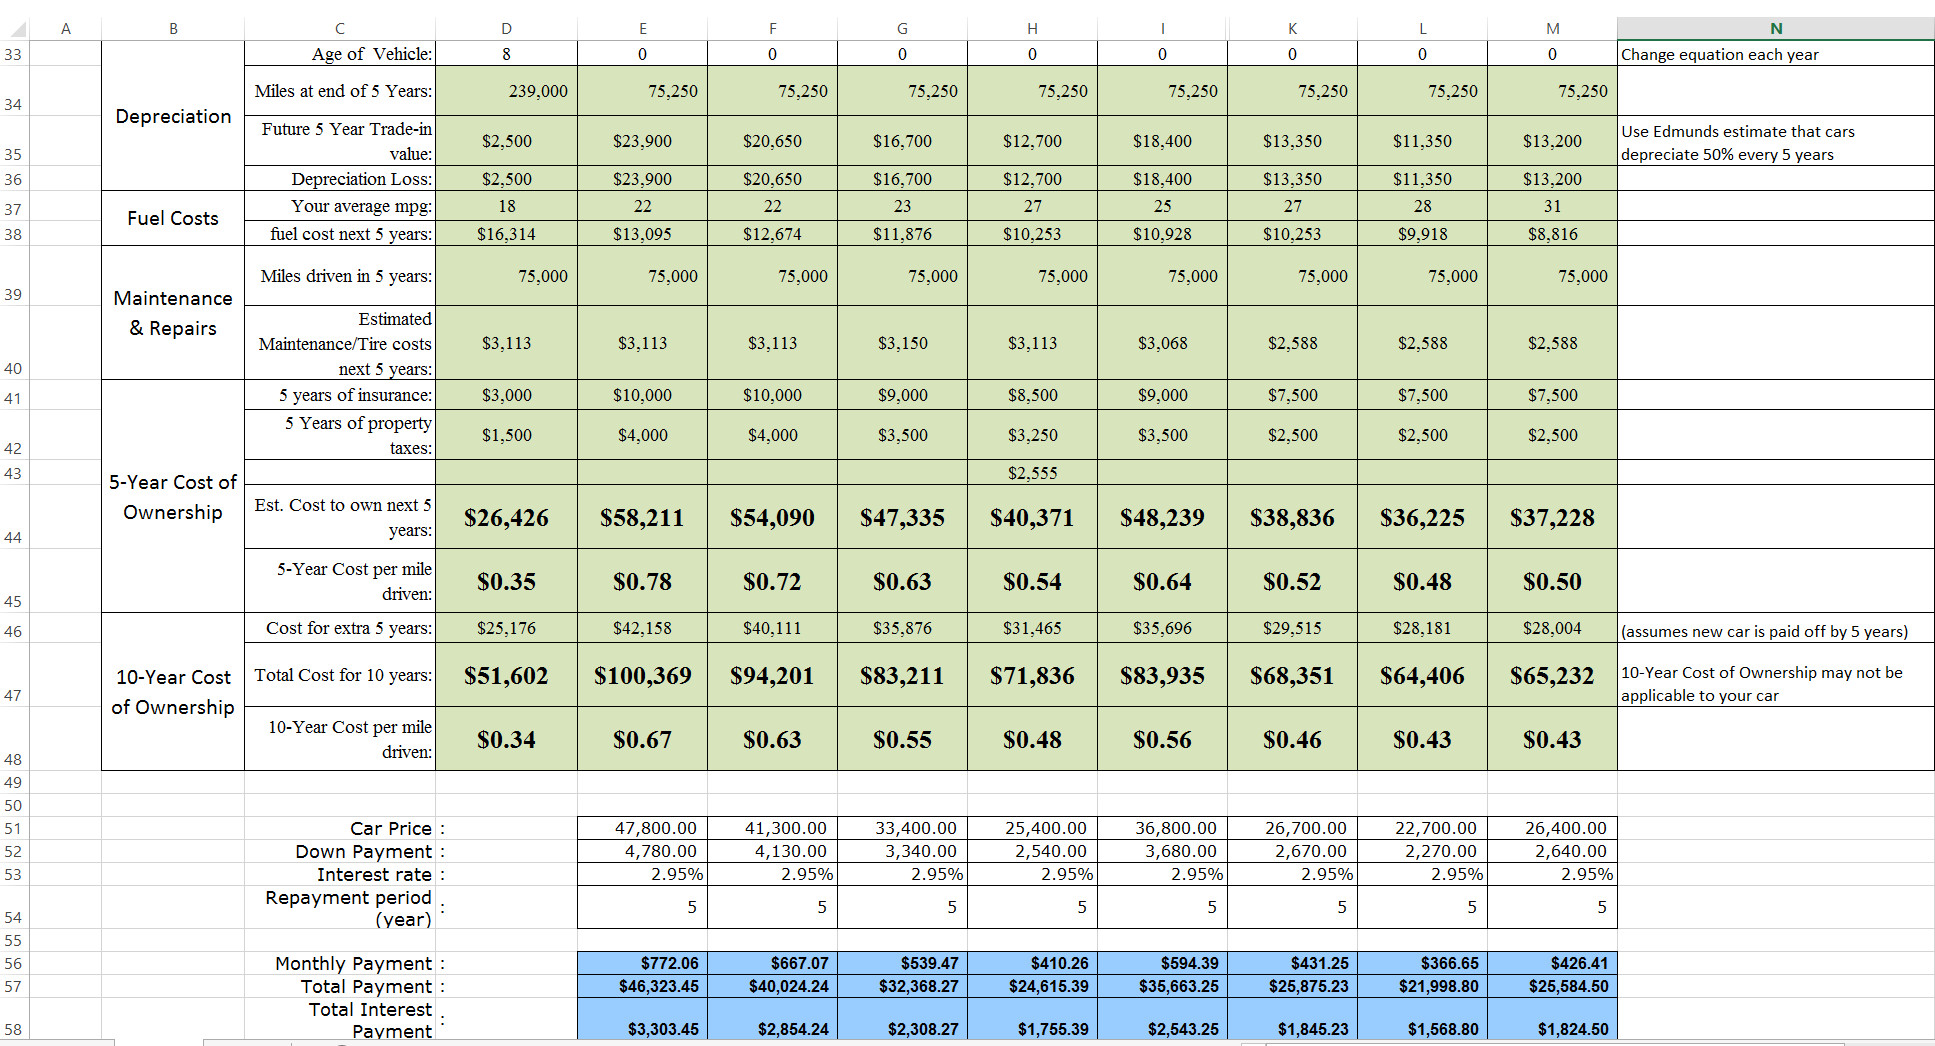 Price Comparison Excel Template Car Cost Parison tool for Excel